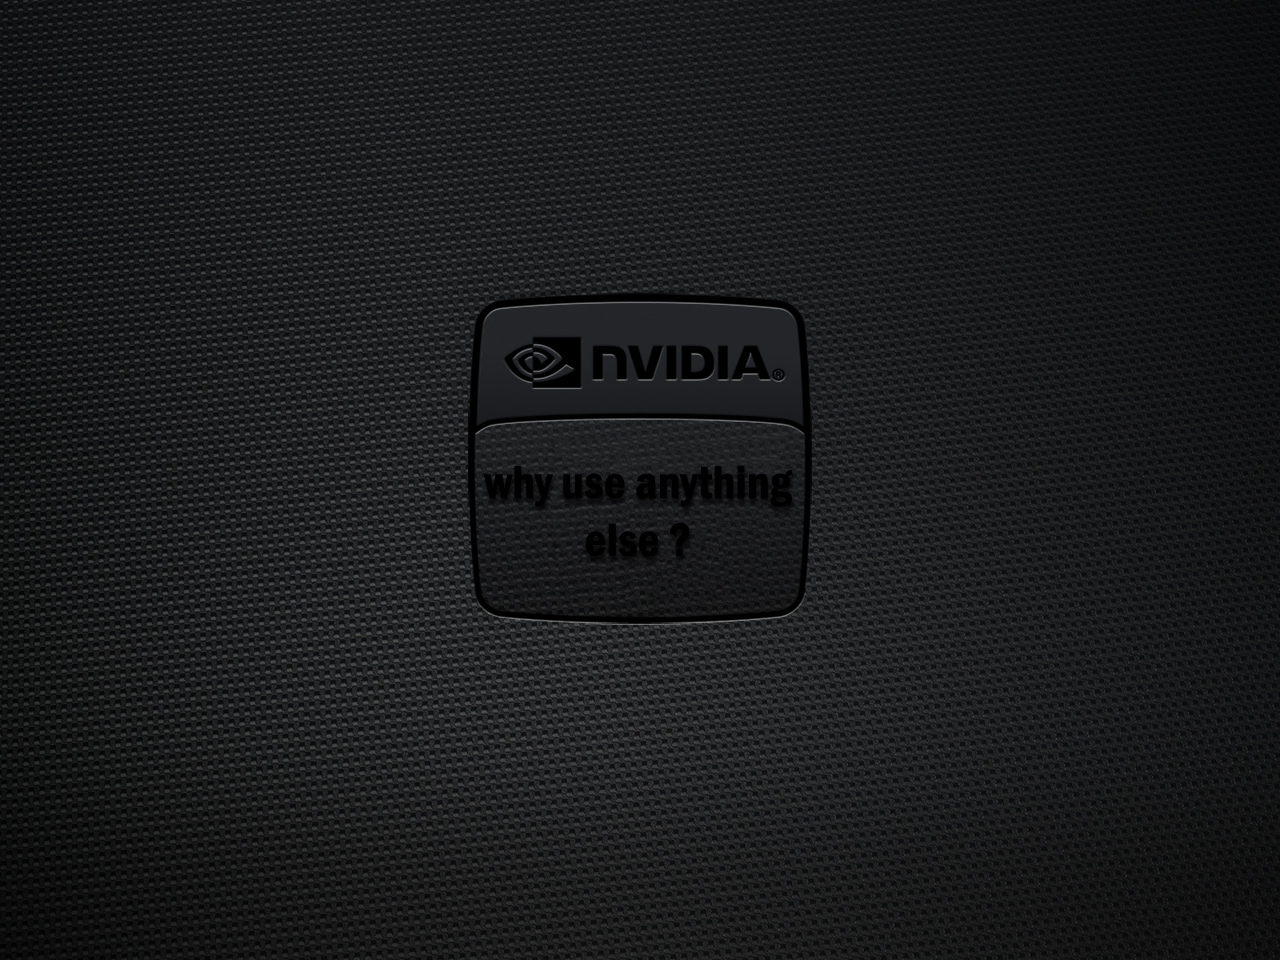 Nvidia Wallpapers 01 1280 X 960